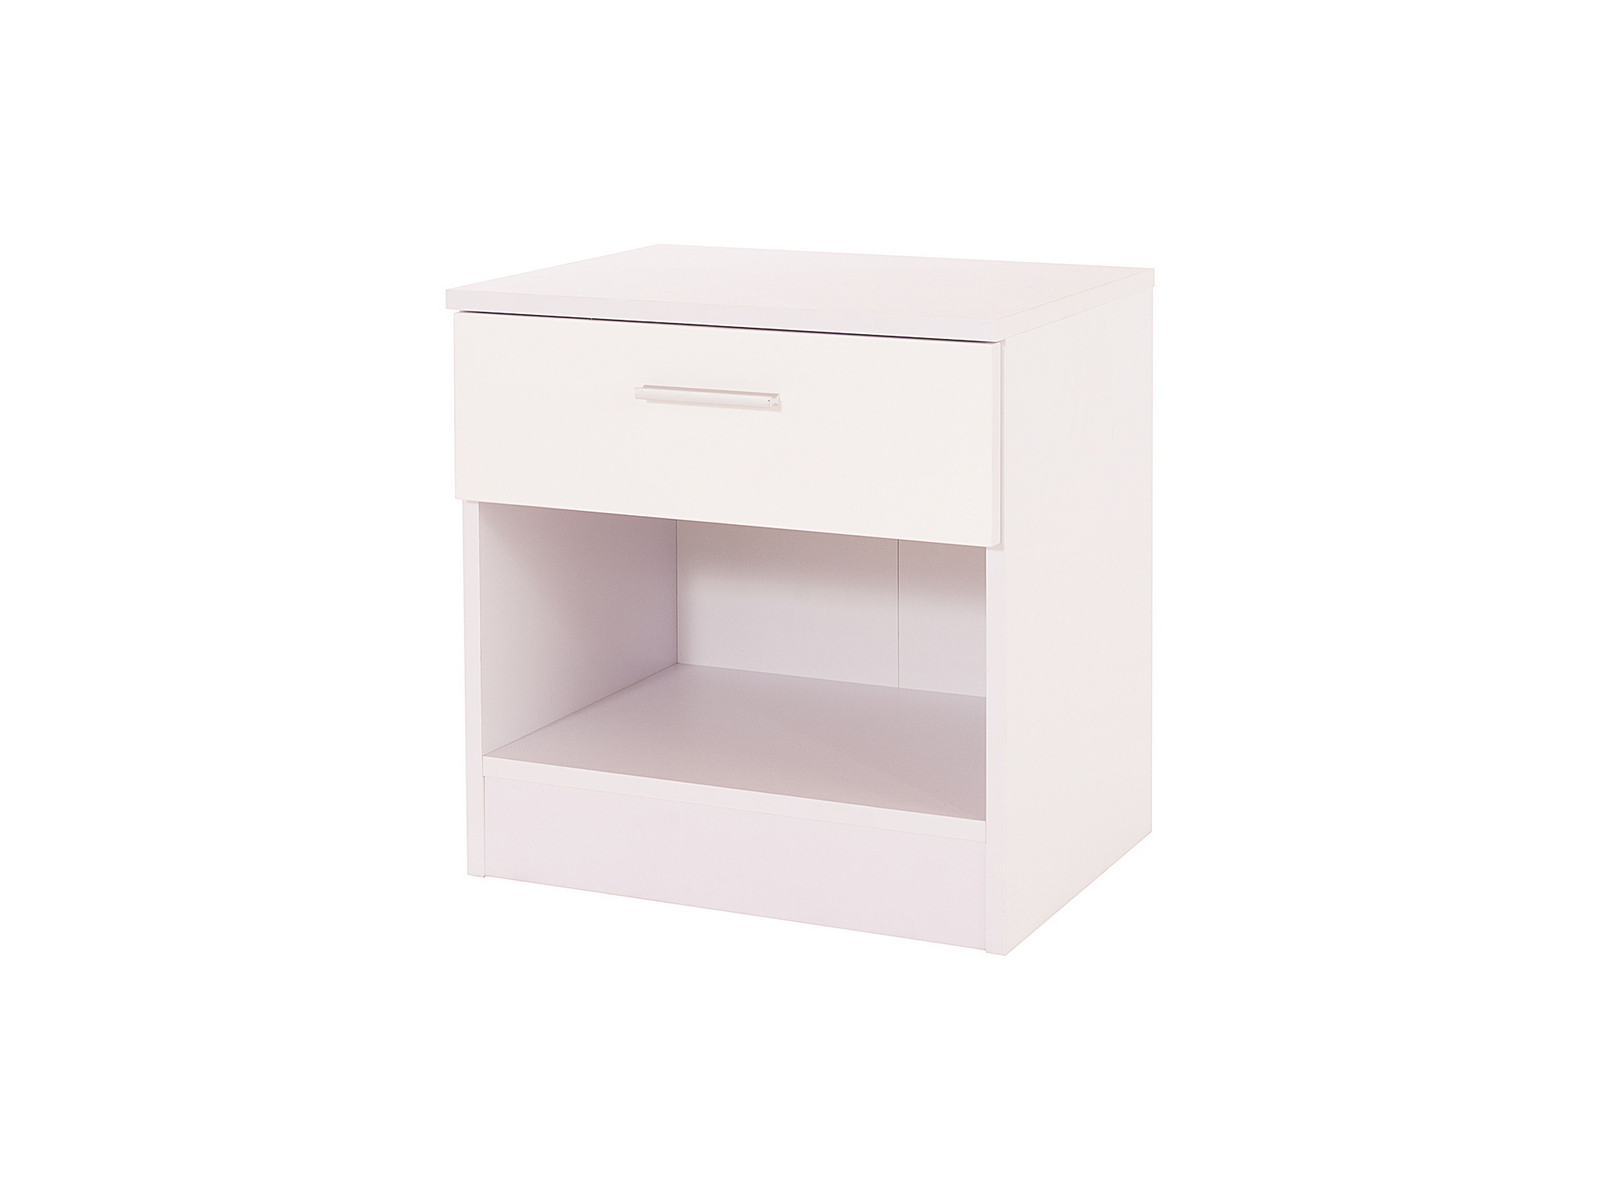 Caspian Supreme White High Gloss Bedside Cabinet With